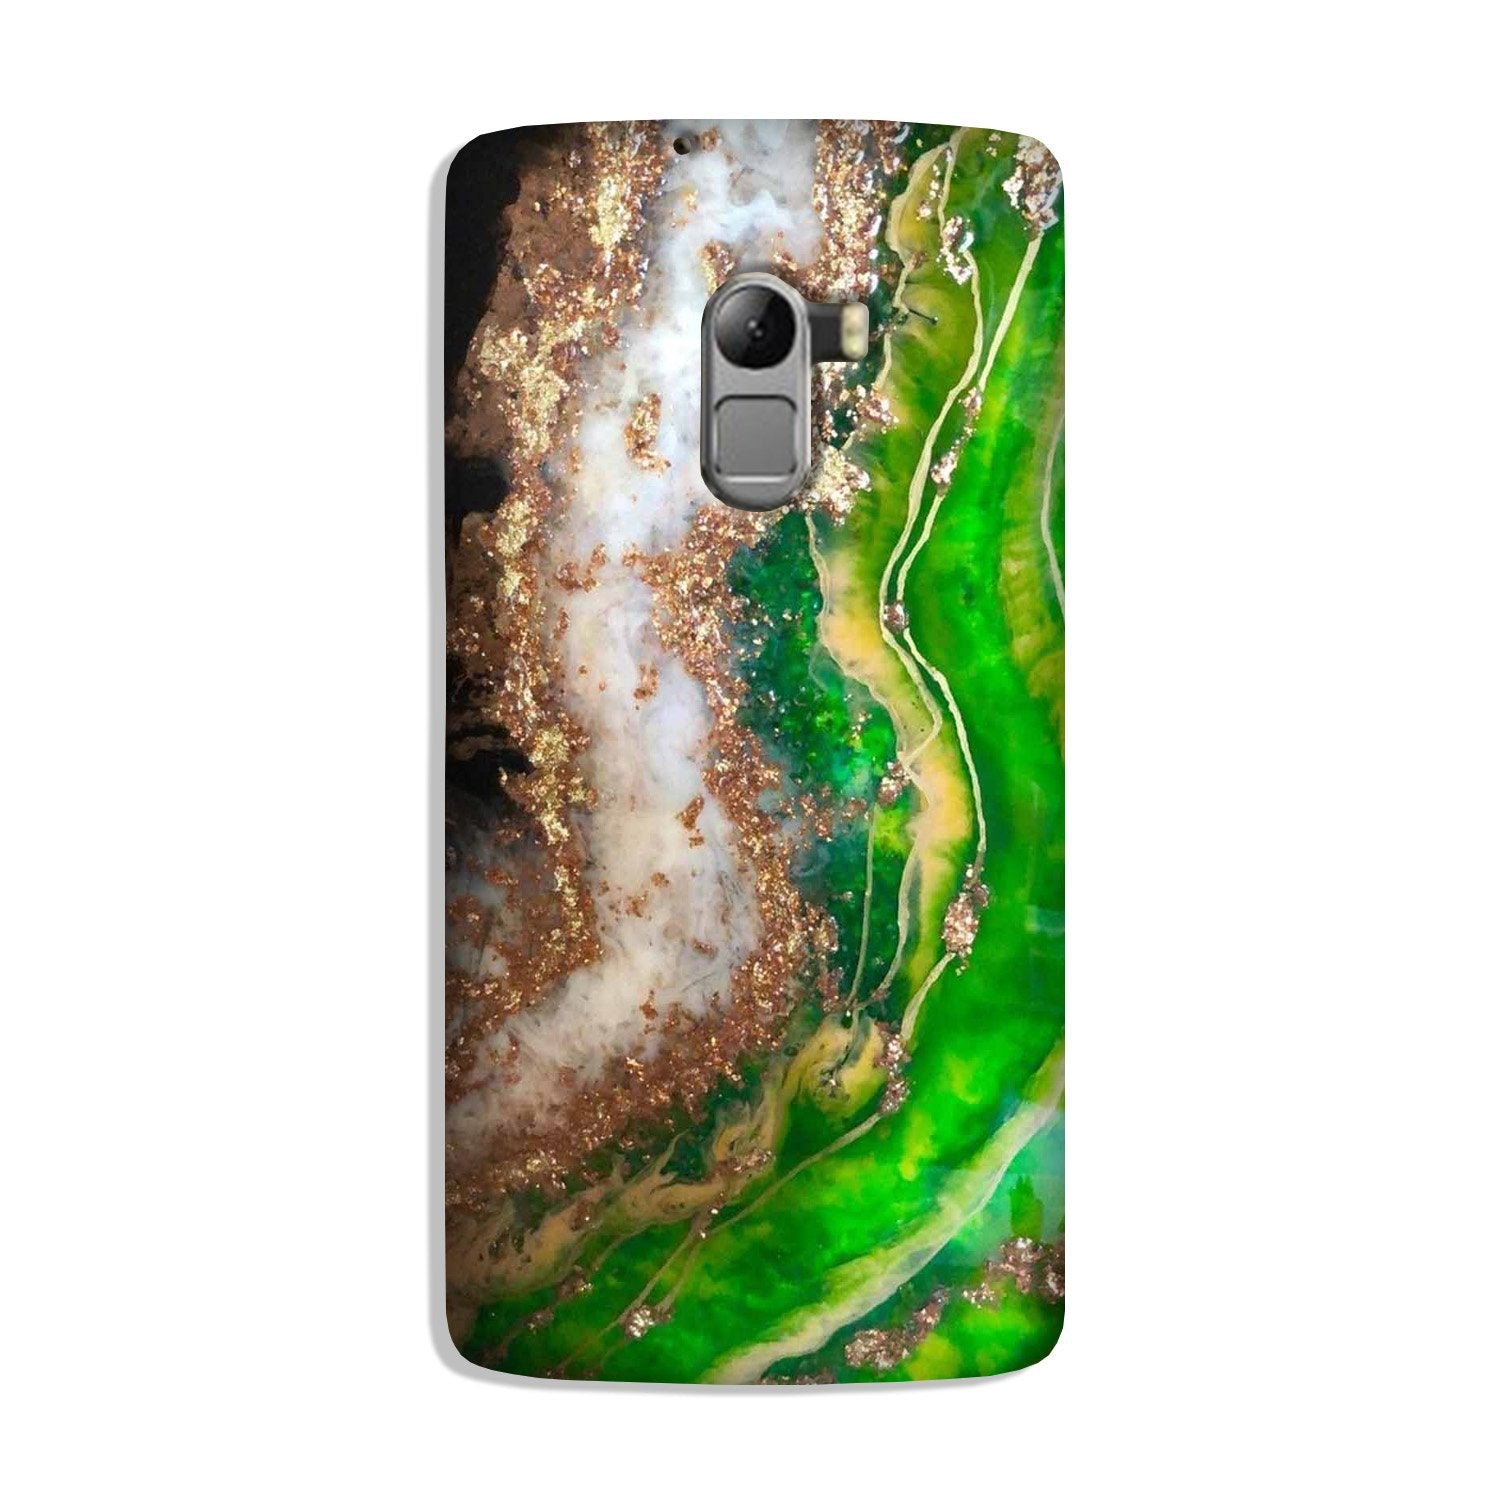 Marble Texture Mobile Back Case for Lenovo K4 Note (Design - 307)